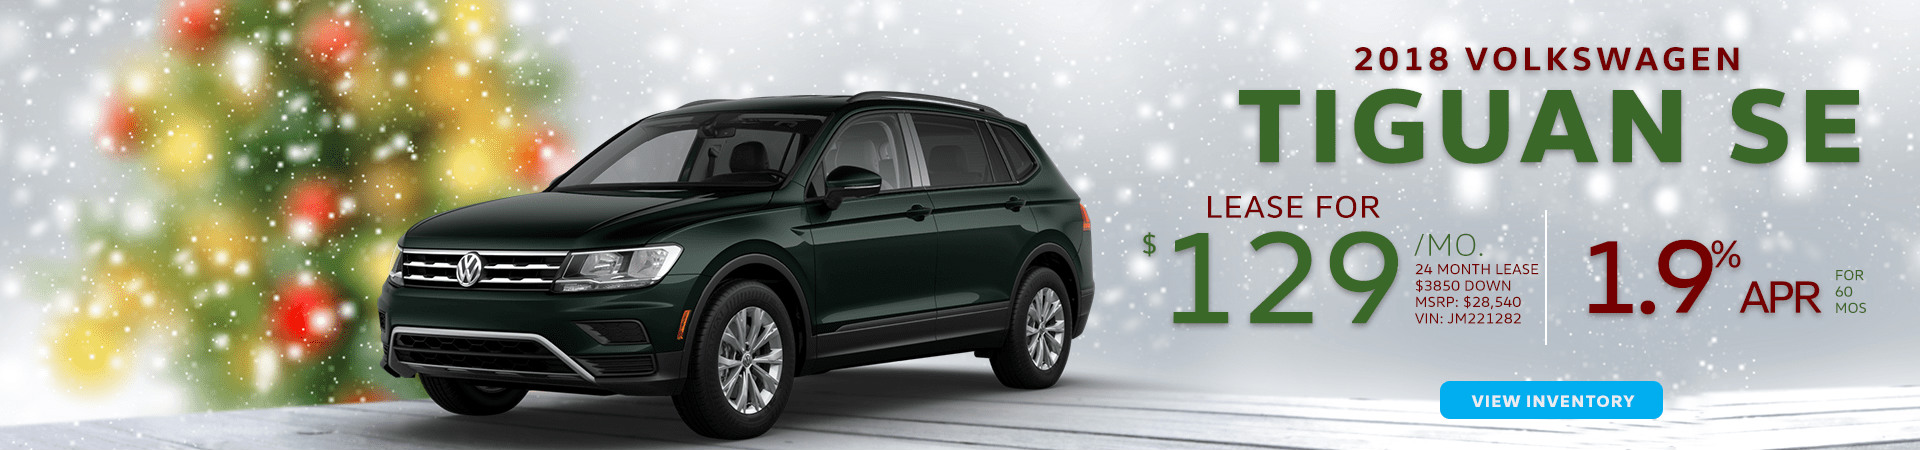 Description of 2018 VW Tiguan specials, a green 2018 VW Tiguan, and a Chistmas-themed background